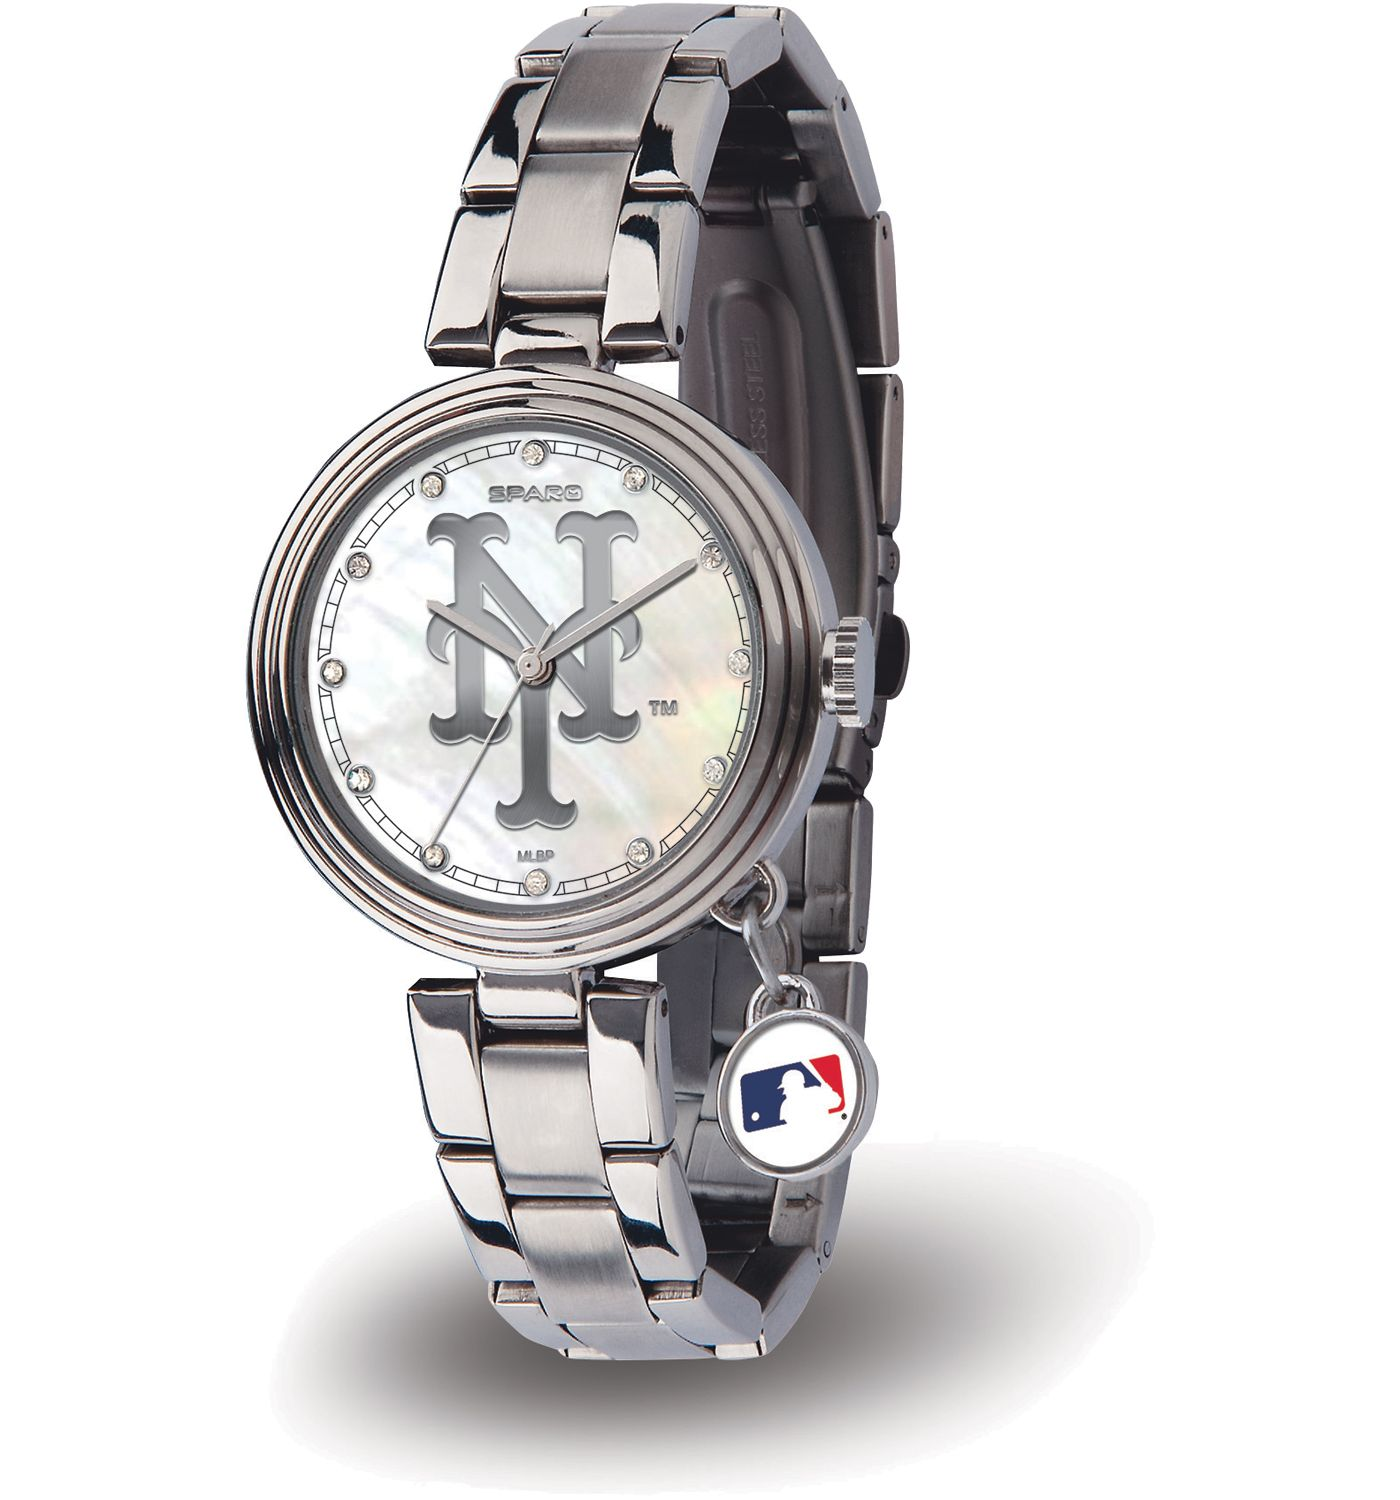 Sparo Women's New York Mets Charm Watch